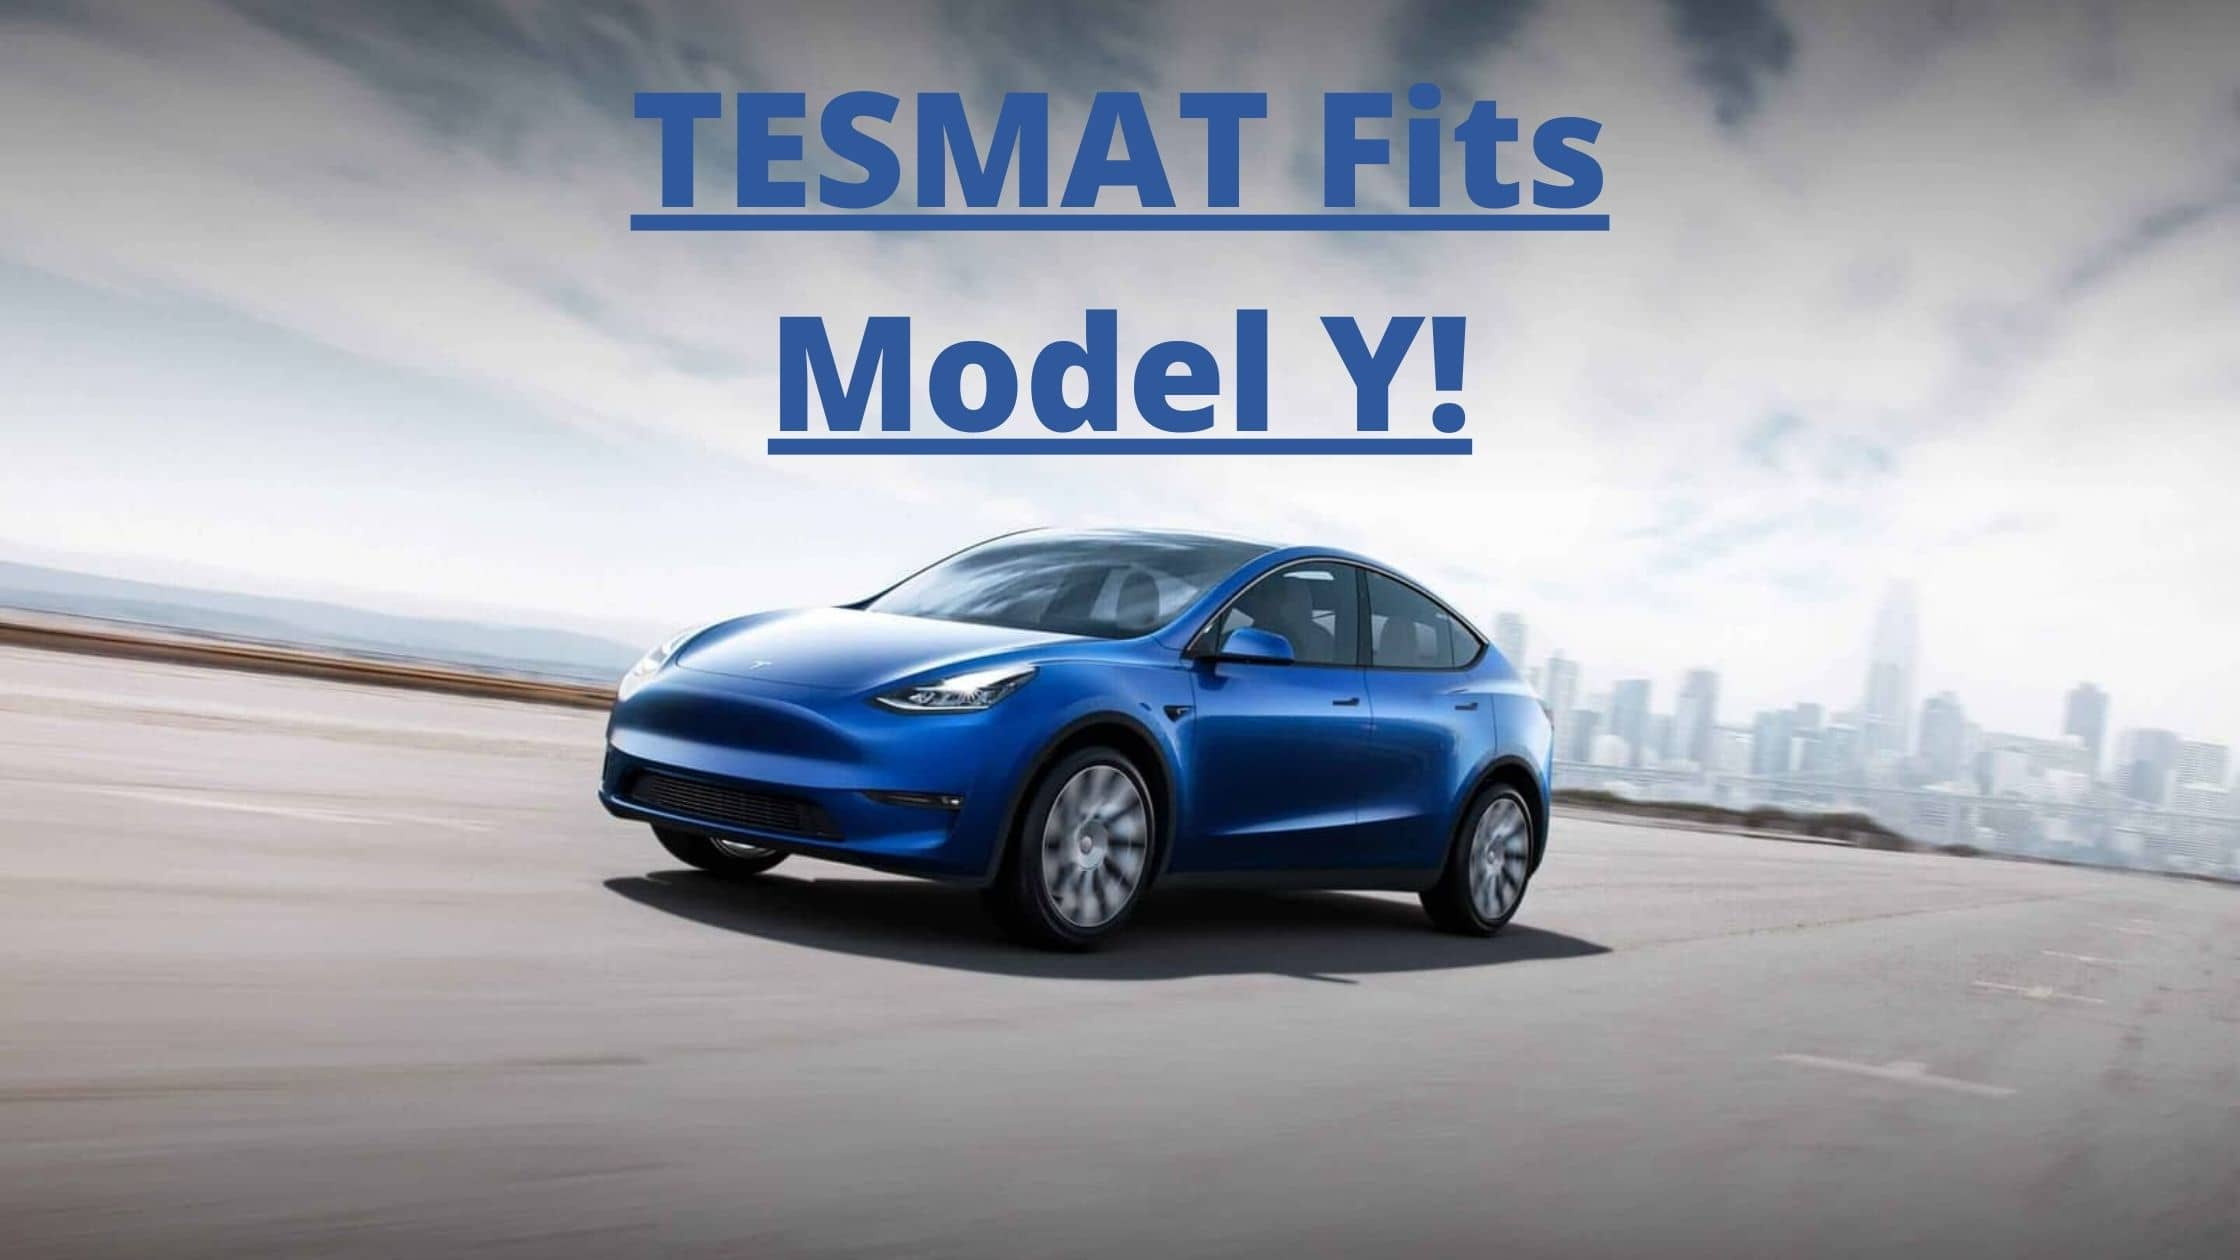 TESMAT Expands Their Offering to Include Tesla Model Y 2